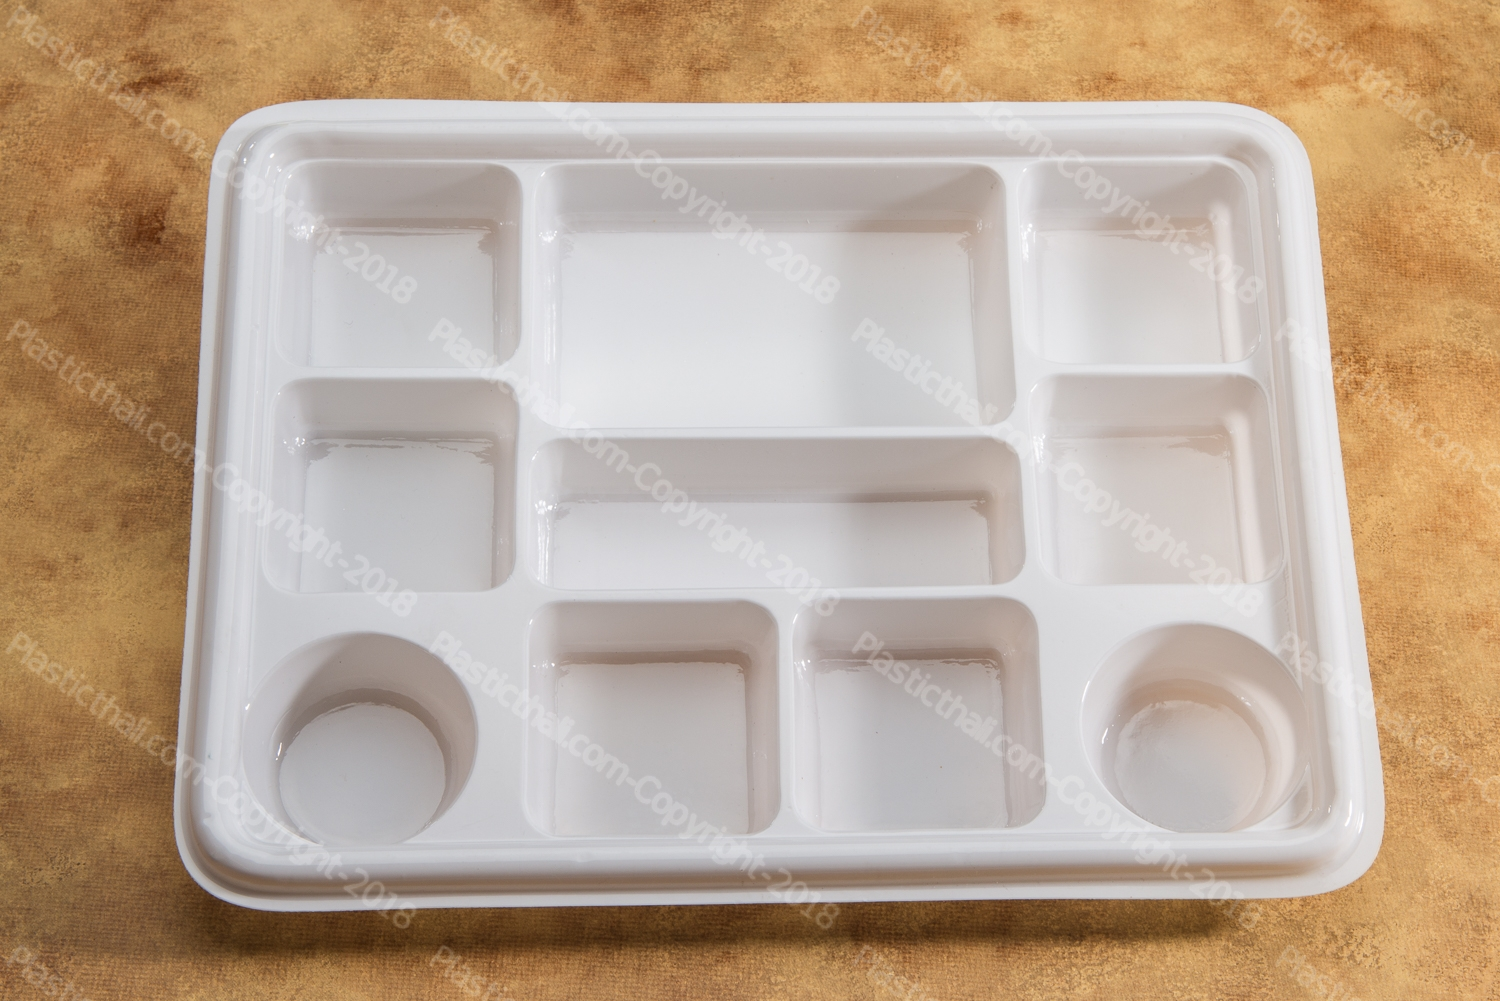 6 compartment disposable plastic plates 7 & White 10 Compartment Plate - PlasticThali.com - Free shipping ...